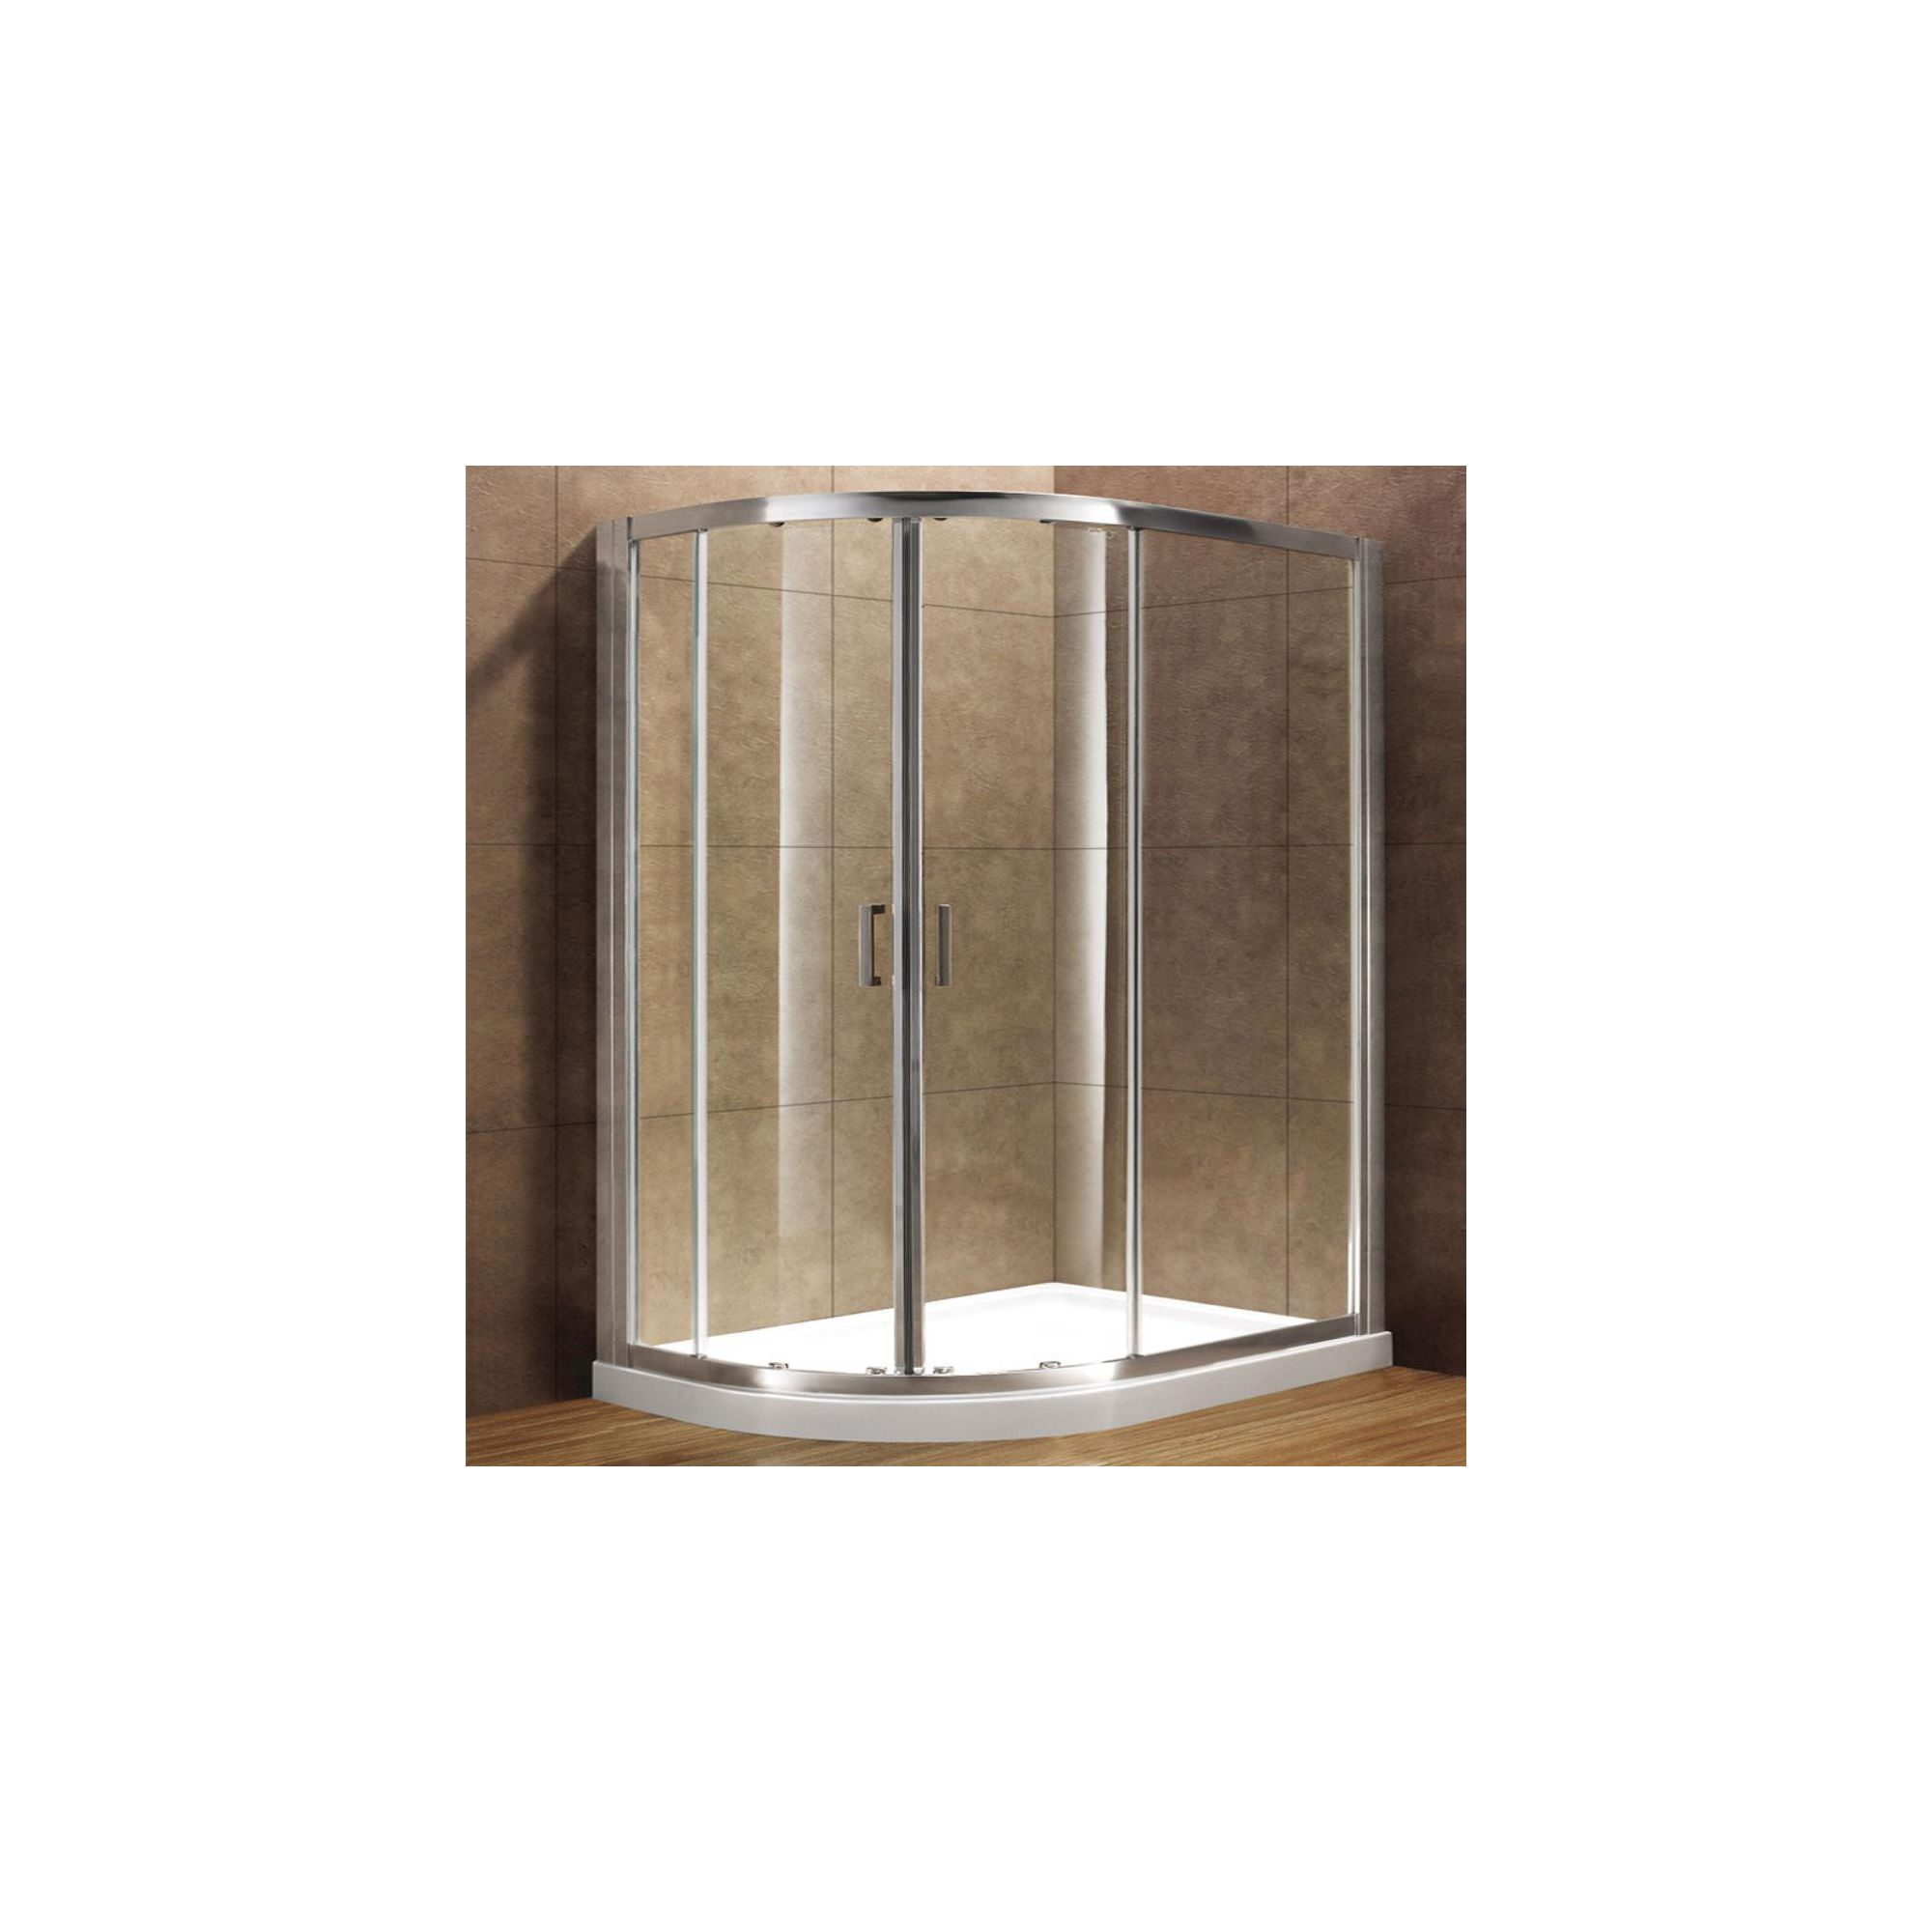 Duchy Premium Double Offset Quadrant Door Shower Enclosure, 1200mm x 900mm, 8mm Glass, Low Profile Tray, Left Handed at Tesco Direct